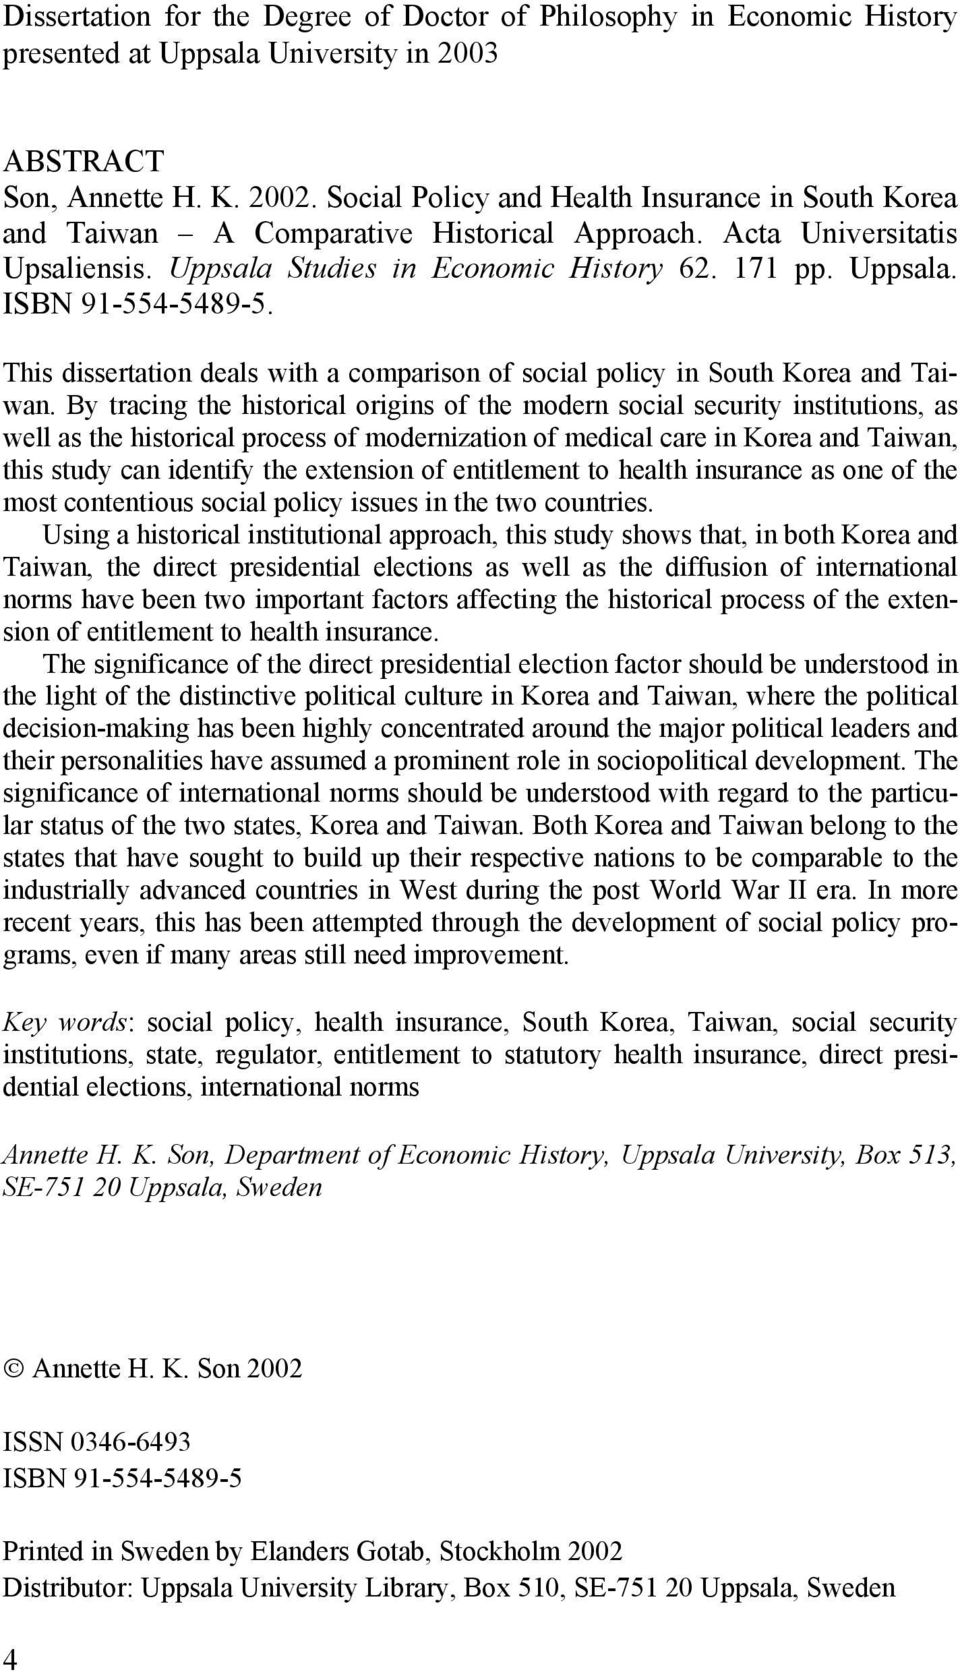 This dissertation deals with a comparison of social policy in South Korea and Taiwan.